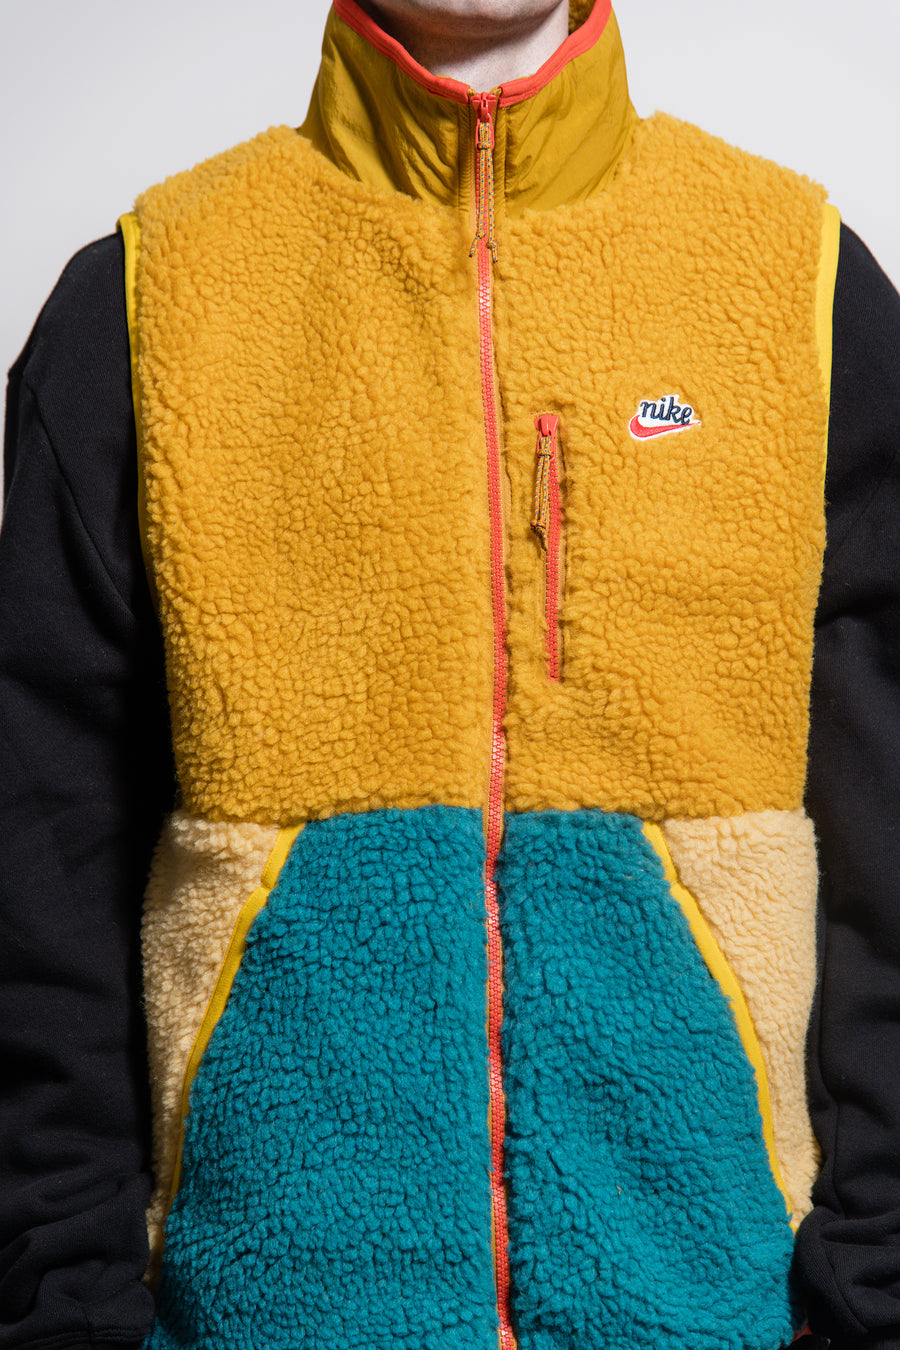 Sherpa Fleece Vest Gold Suede/Club Gold/Geode Teal CD3142-727